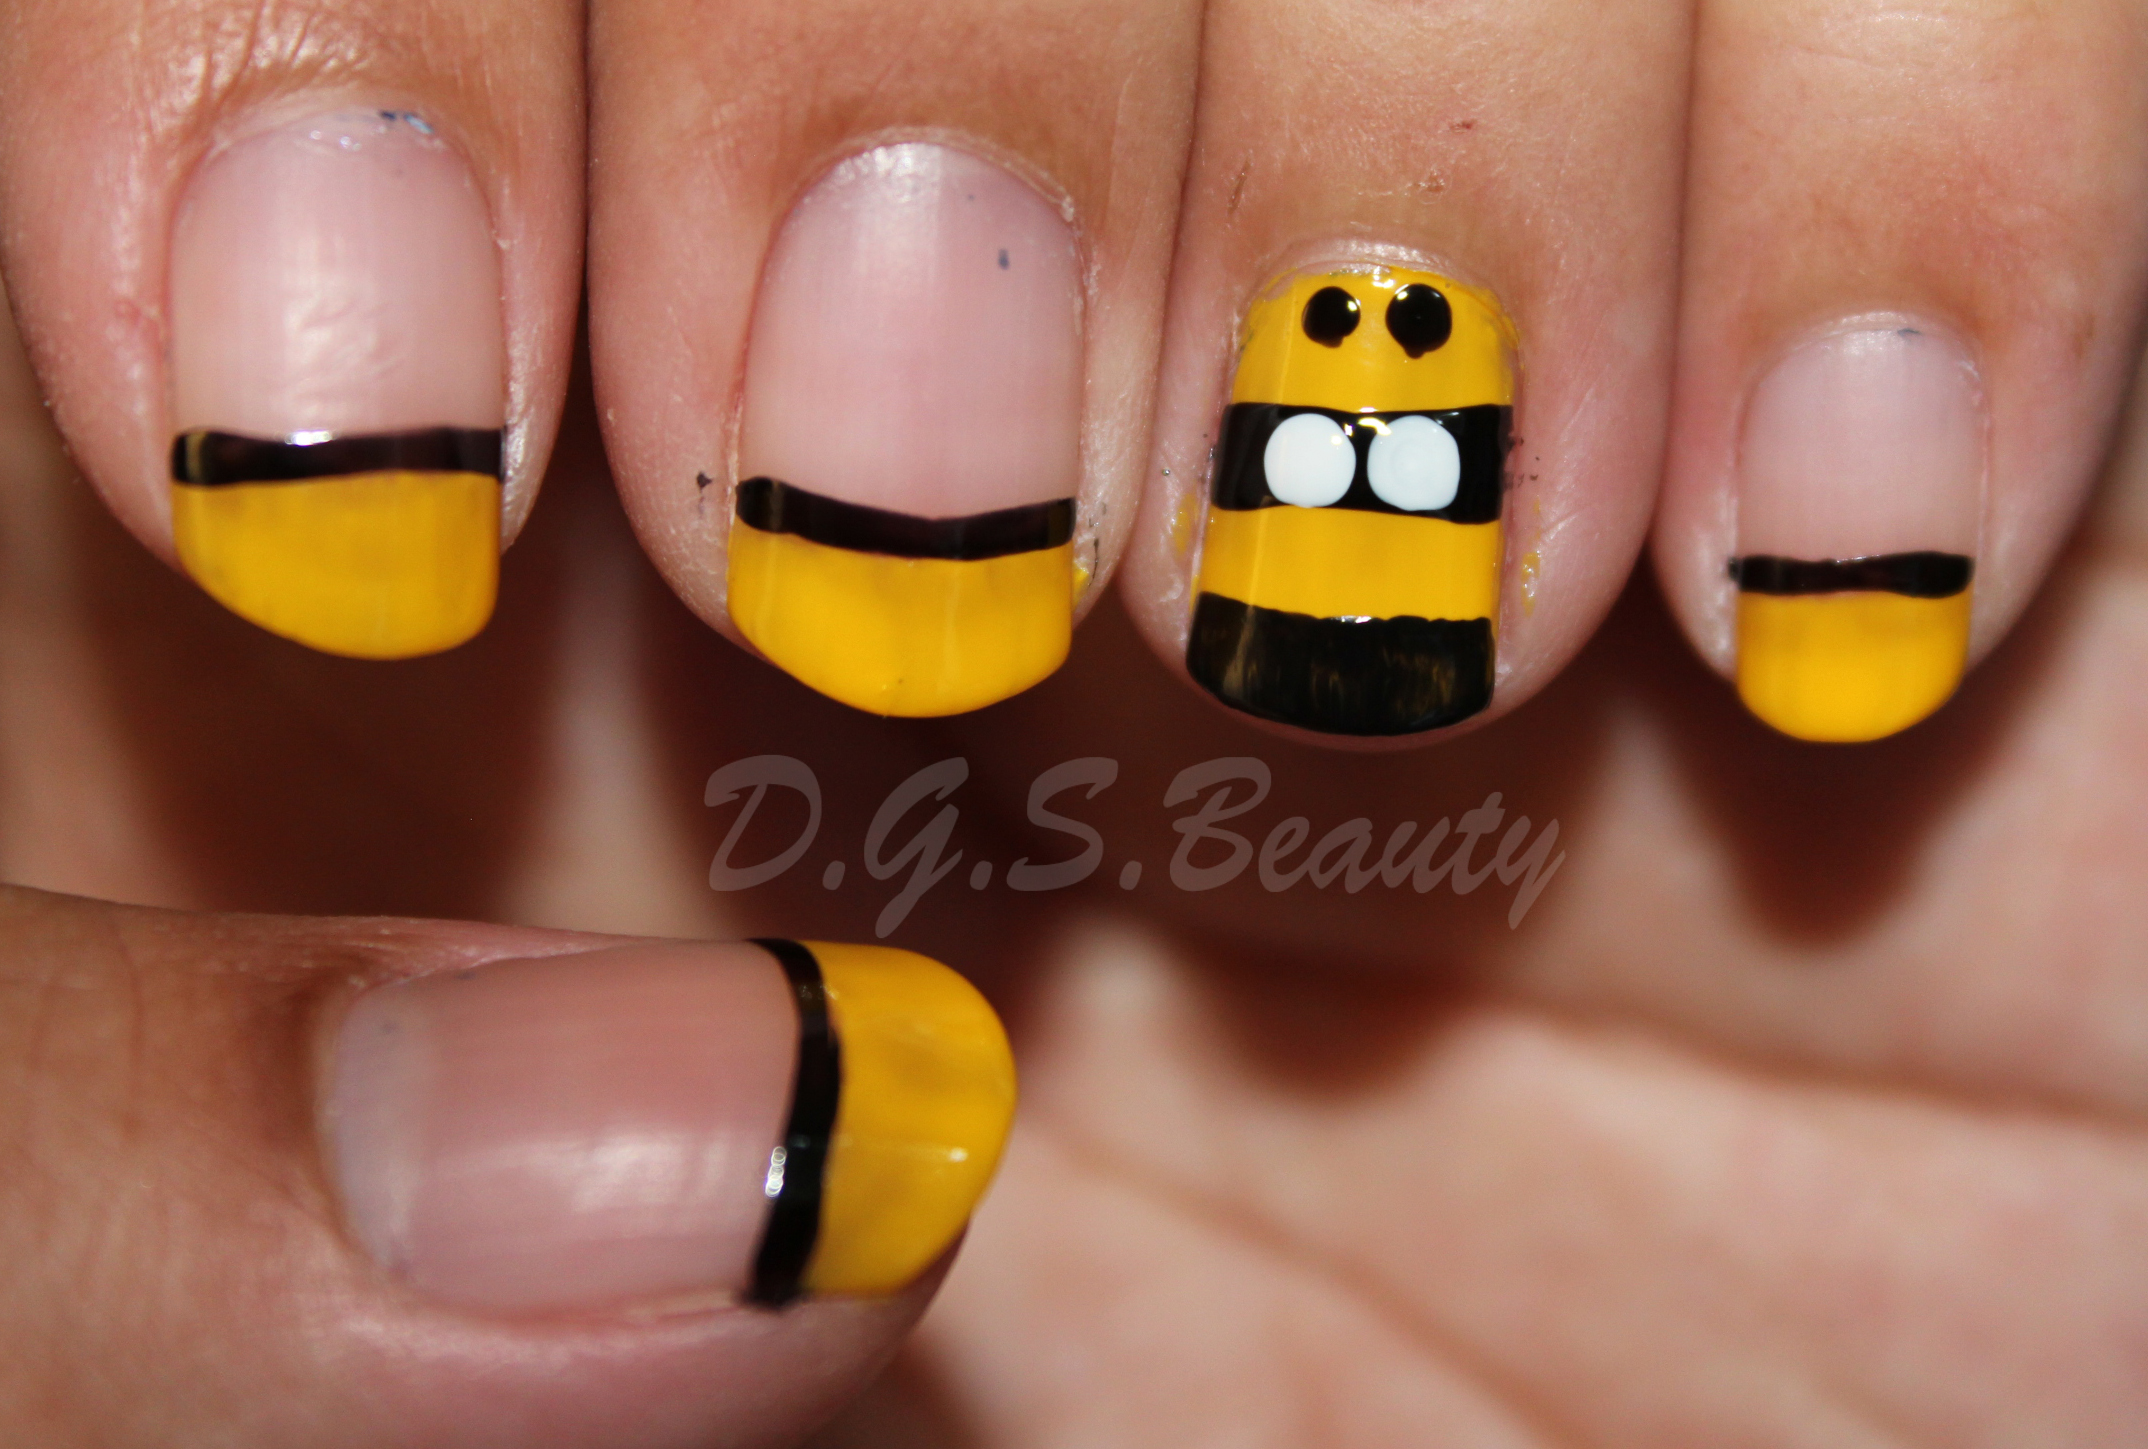 Notw diy nail art 6 bumblebee nails dgsauty 2 kiss brush on nail art white 3 kiss brush on nail art black 4 sephora by opi whats a tire jack prinsesfo Image collections